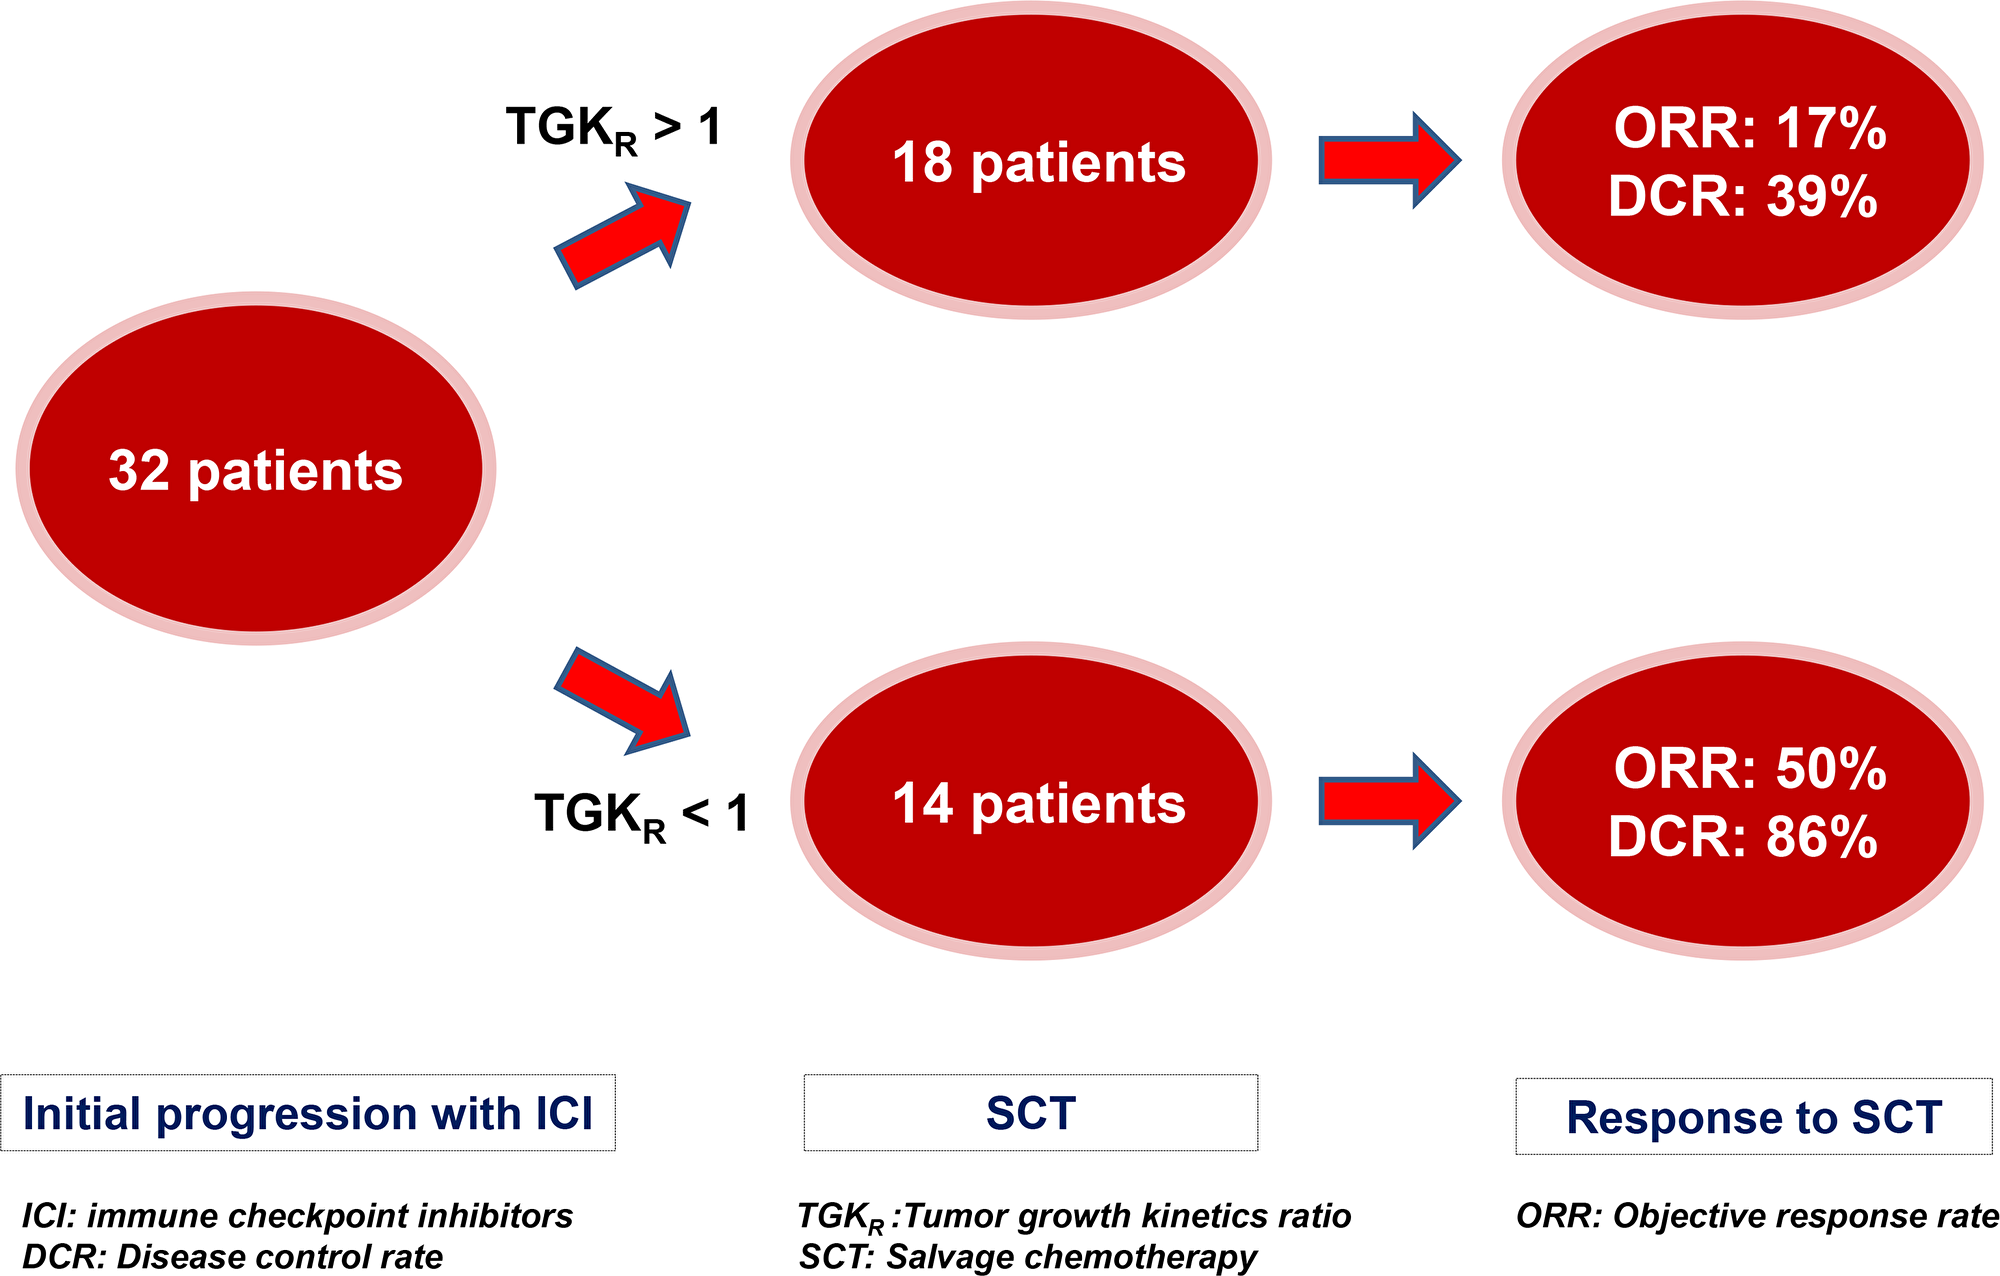 Impact of Tumor Growth Kinetics ratio (TGKR) on outcomes with salvage chemotherapy (SCT) after initial RECIST 1.1 progression with immune checkpoint inhibitors (ICI).